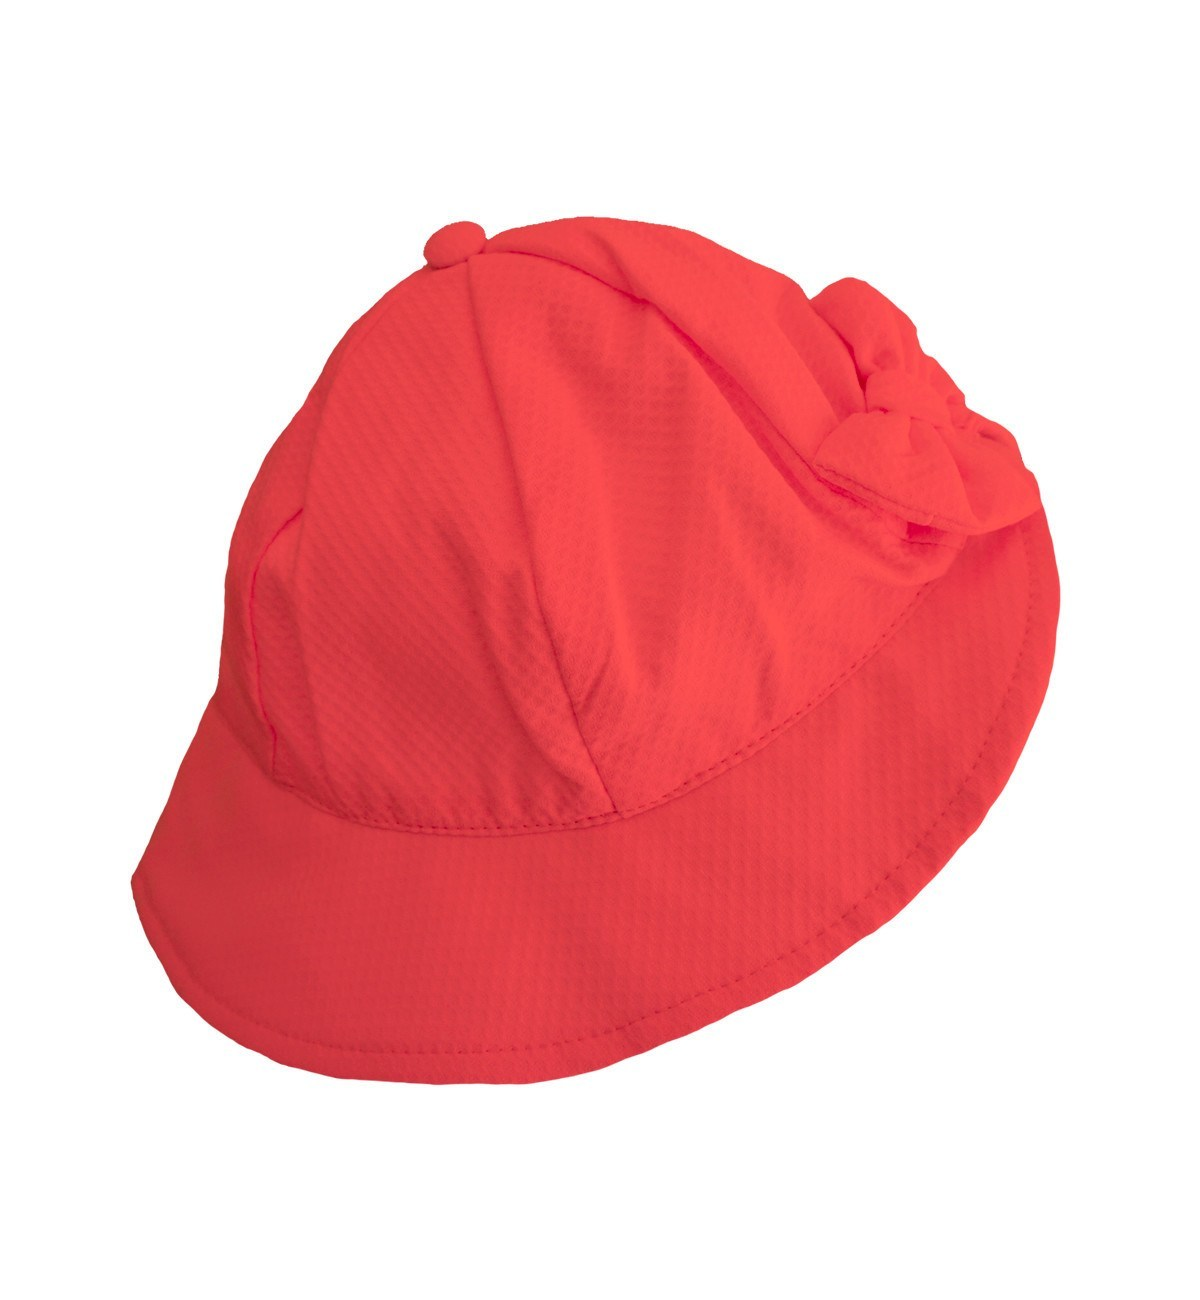 Spanish baby clothes | baby Hat | Red honey pique hat |babymaC